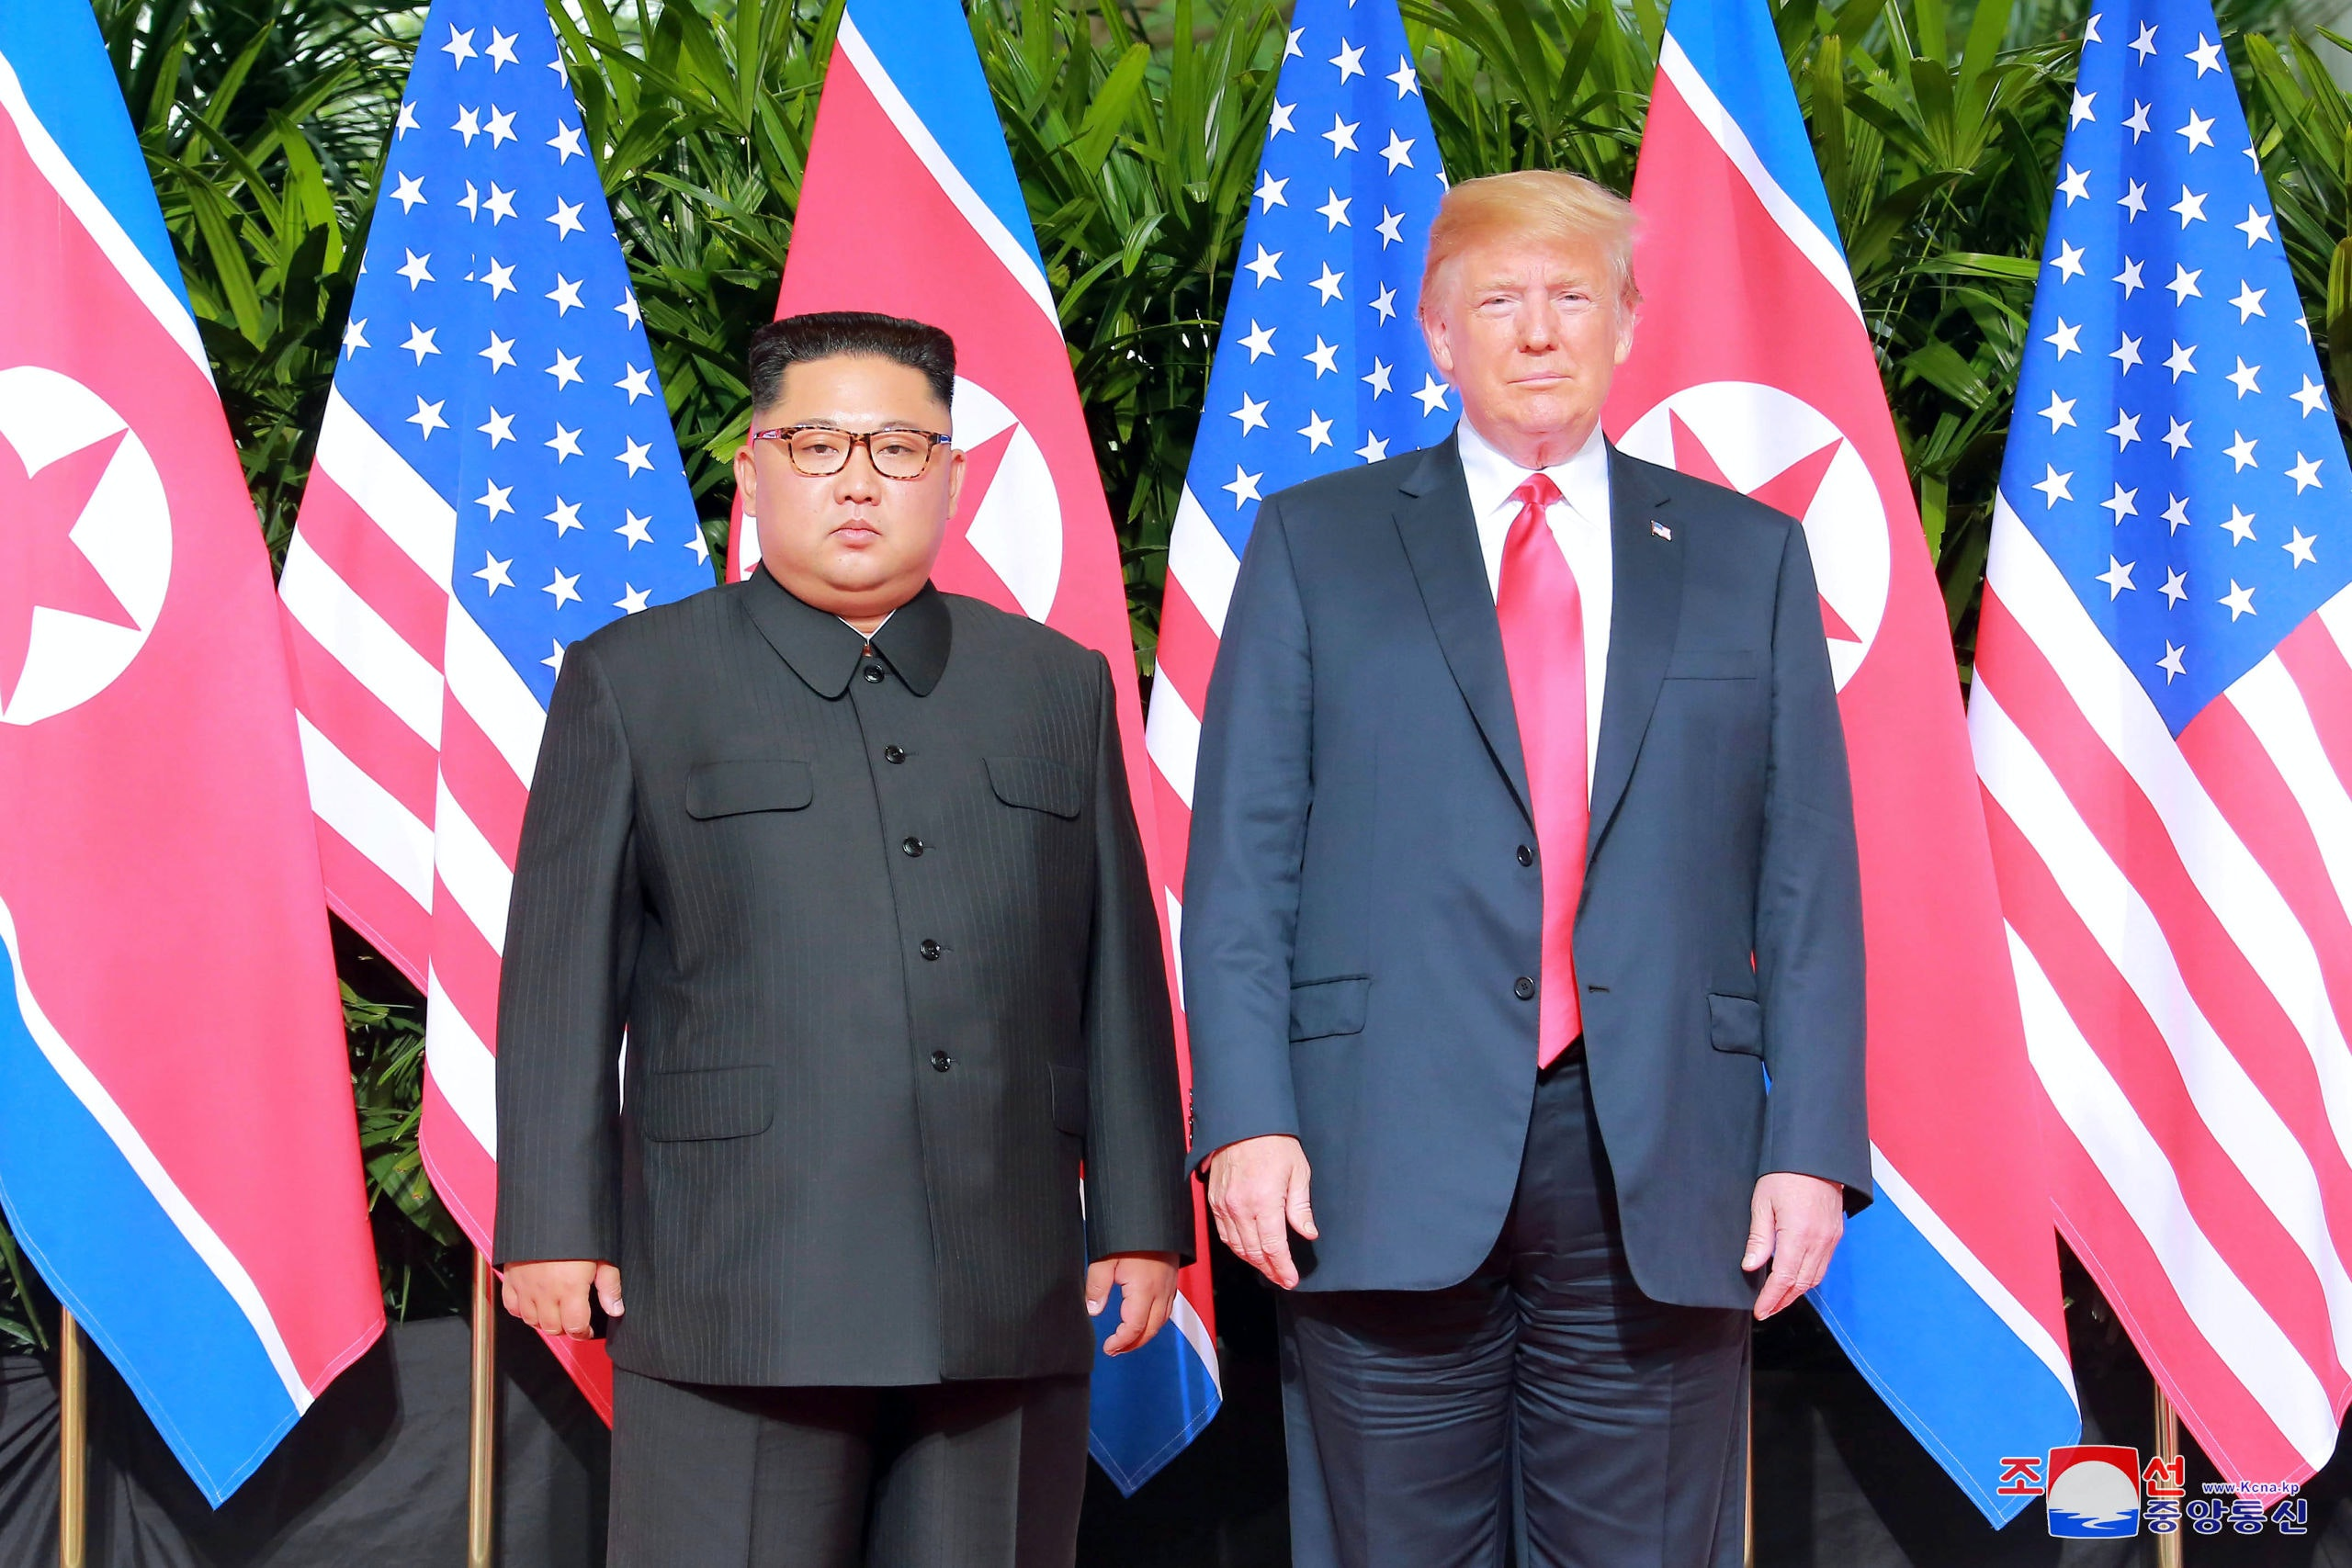 U.S. President Donald Trump and North Korean leader Kim Jong Un pose at the Capella Hotel on Sentosa island in Singapore in this picture released on June 12, 2018 by North Korea's Korean Central News Agency. KCNA via REUTERS ATTENTION EDITORS - THIS PICTURE WAS PROVIDED BY A THIRD PARTY. REUTERS IS UNABLE TO INDEPENDENTLY VERIFY THE AUTHENTICITY, CONTENT, LOCATION OR DATE OF THIS IMAGE. NO THIRD PARTY SALES. NOT FOR USE BY REUTERS THIRD PARTY DISTRIBUTORS. SOUTH KOREA OUT. NO COMMERCIAL OR EDITORIAL SALES IN SOUTH KOREA. - RC16222D6E80